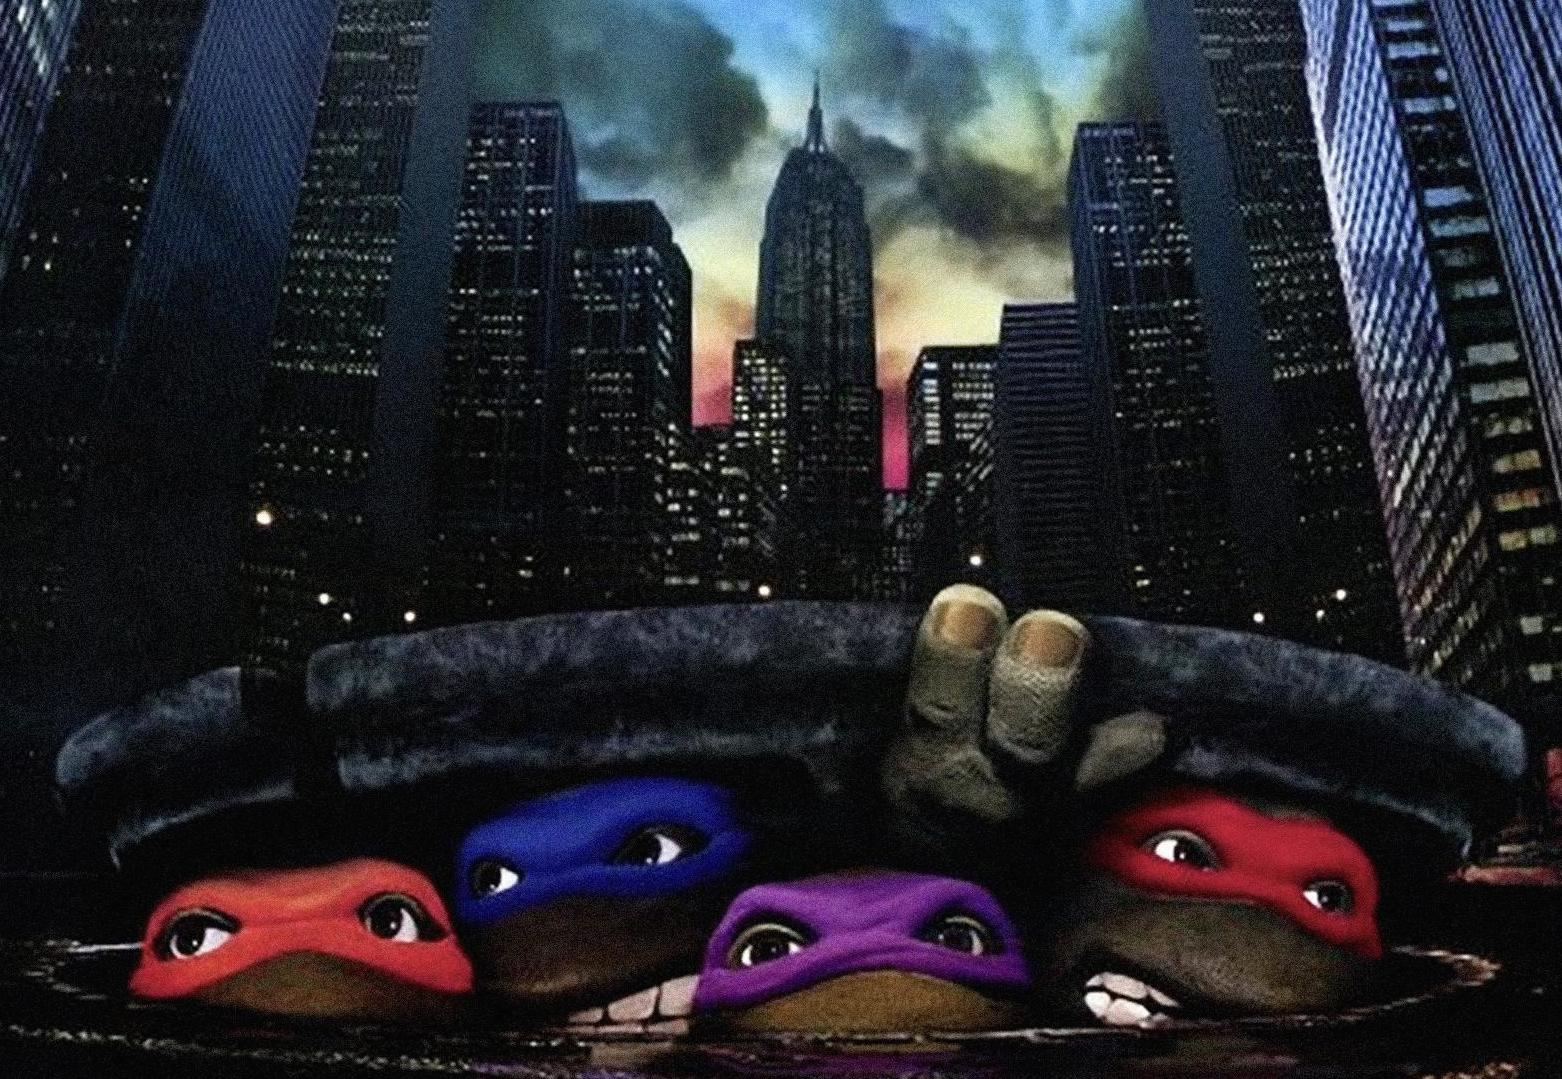 'Teenage Mutant Ninja Turtles' Filmmakers Sue for $3 Million in Unpaid Profits